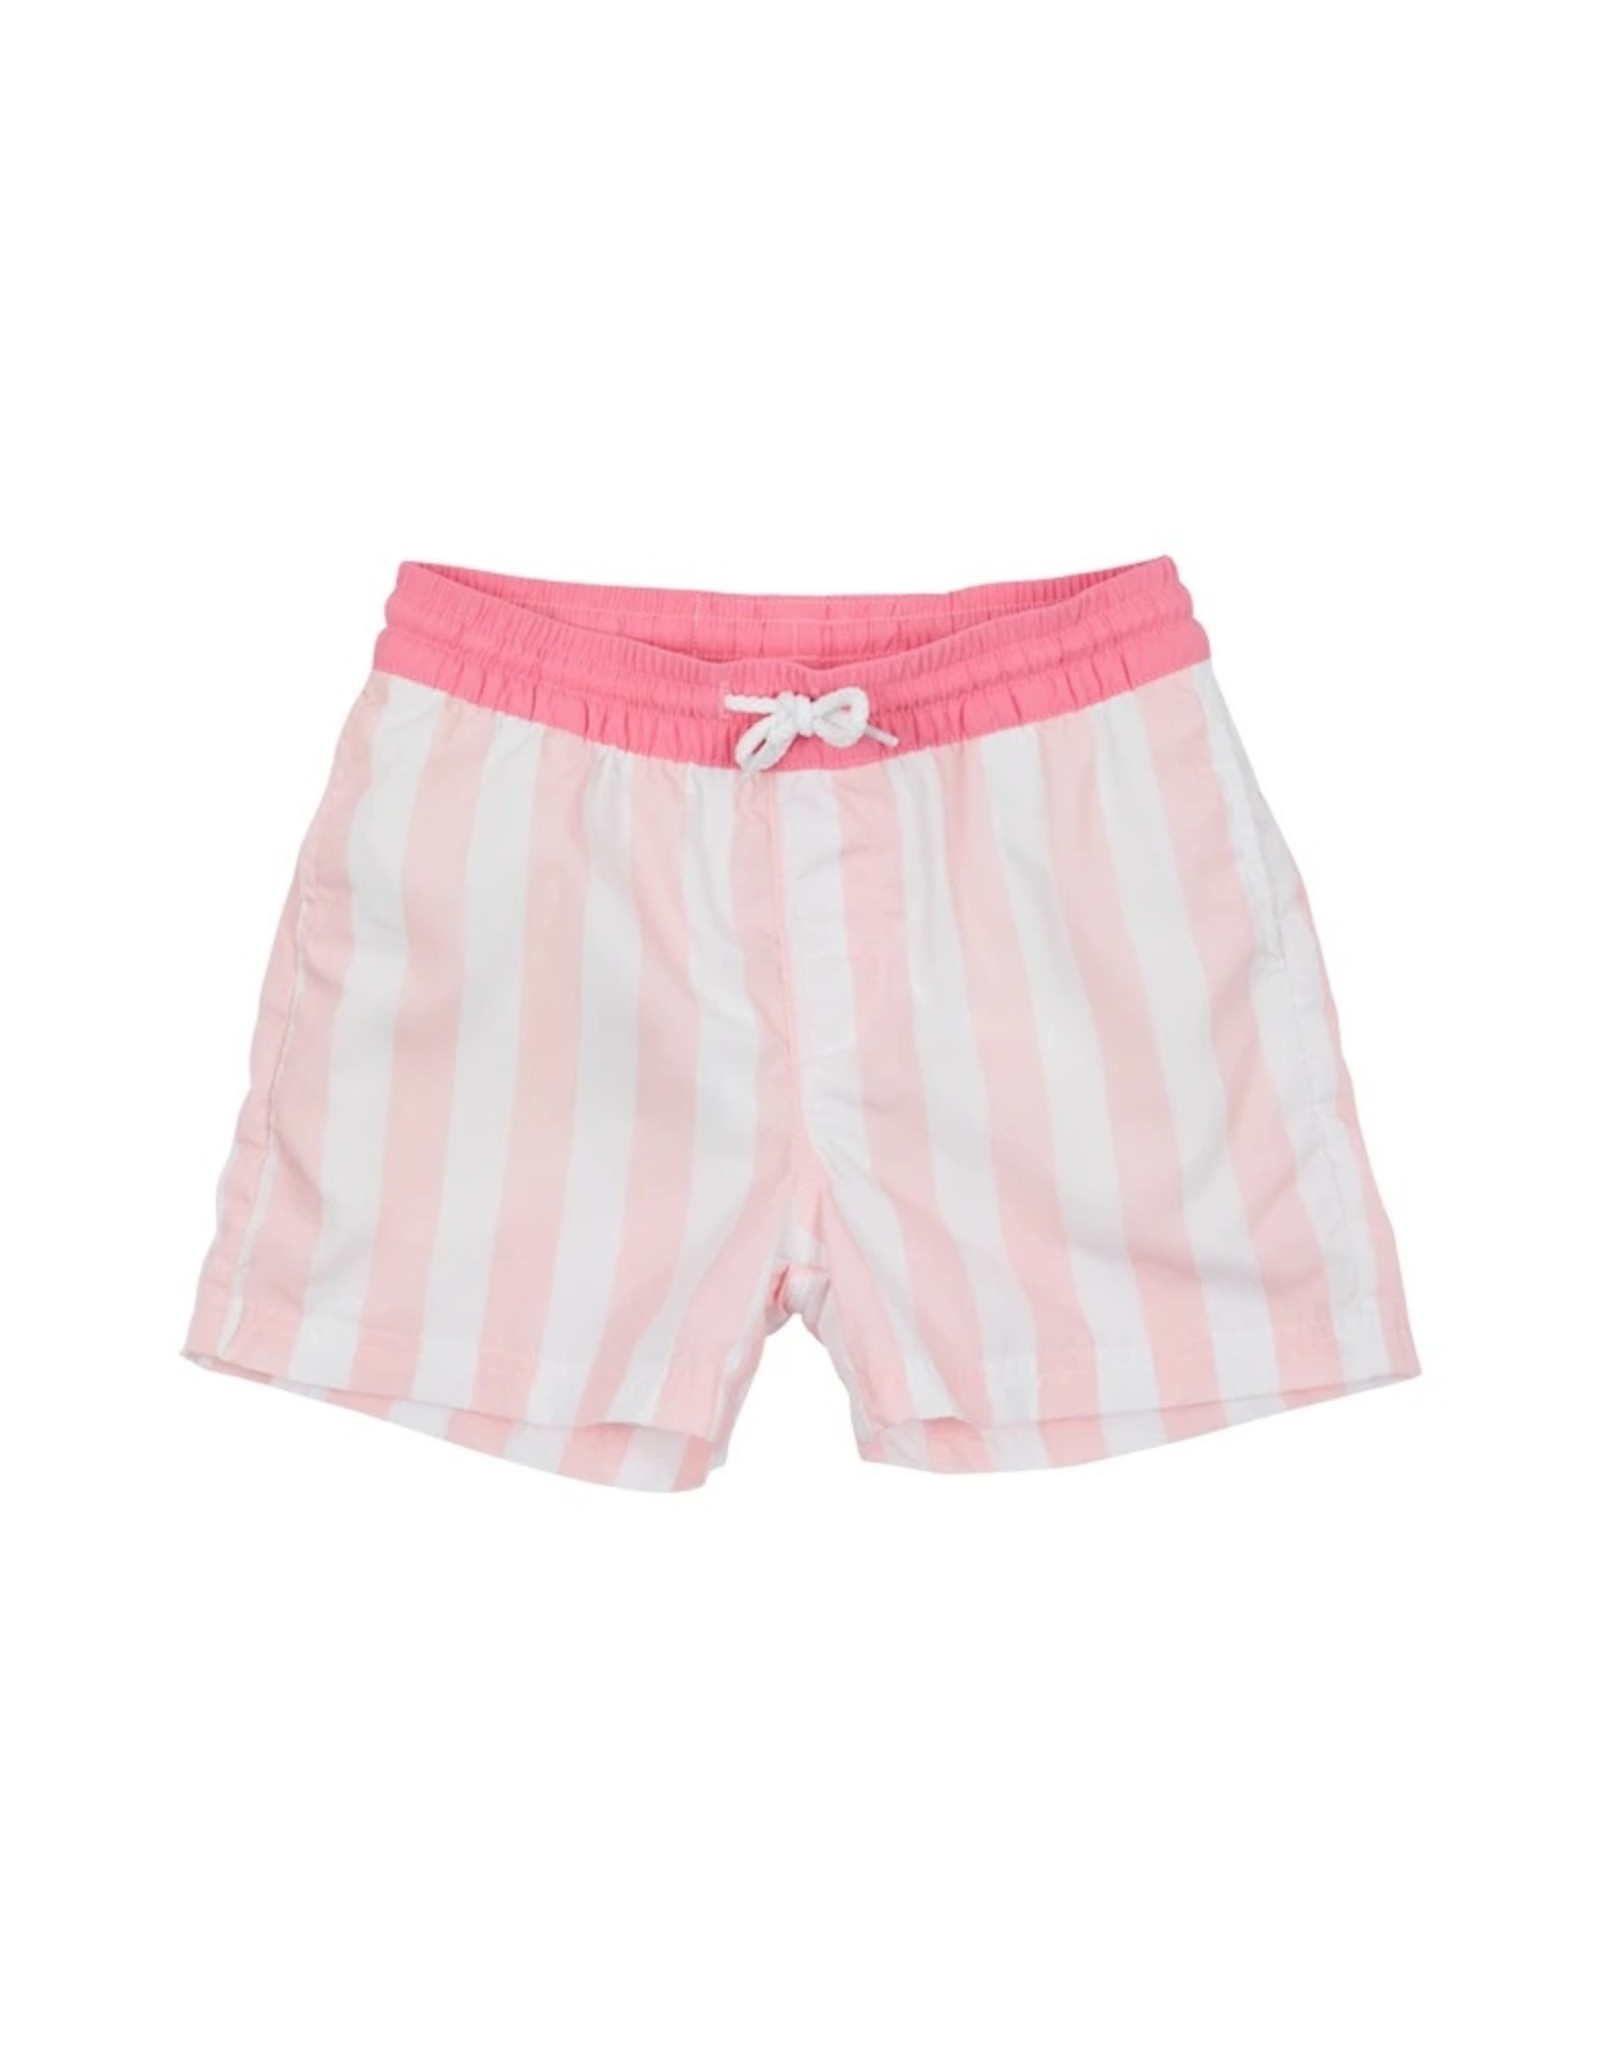 The Beaufort Bonnet Company Turtle Bay Swim Trunks